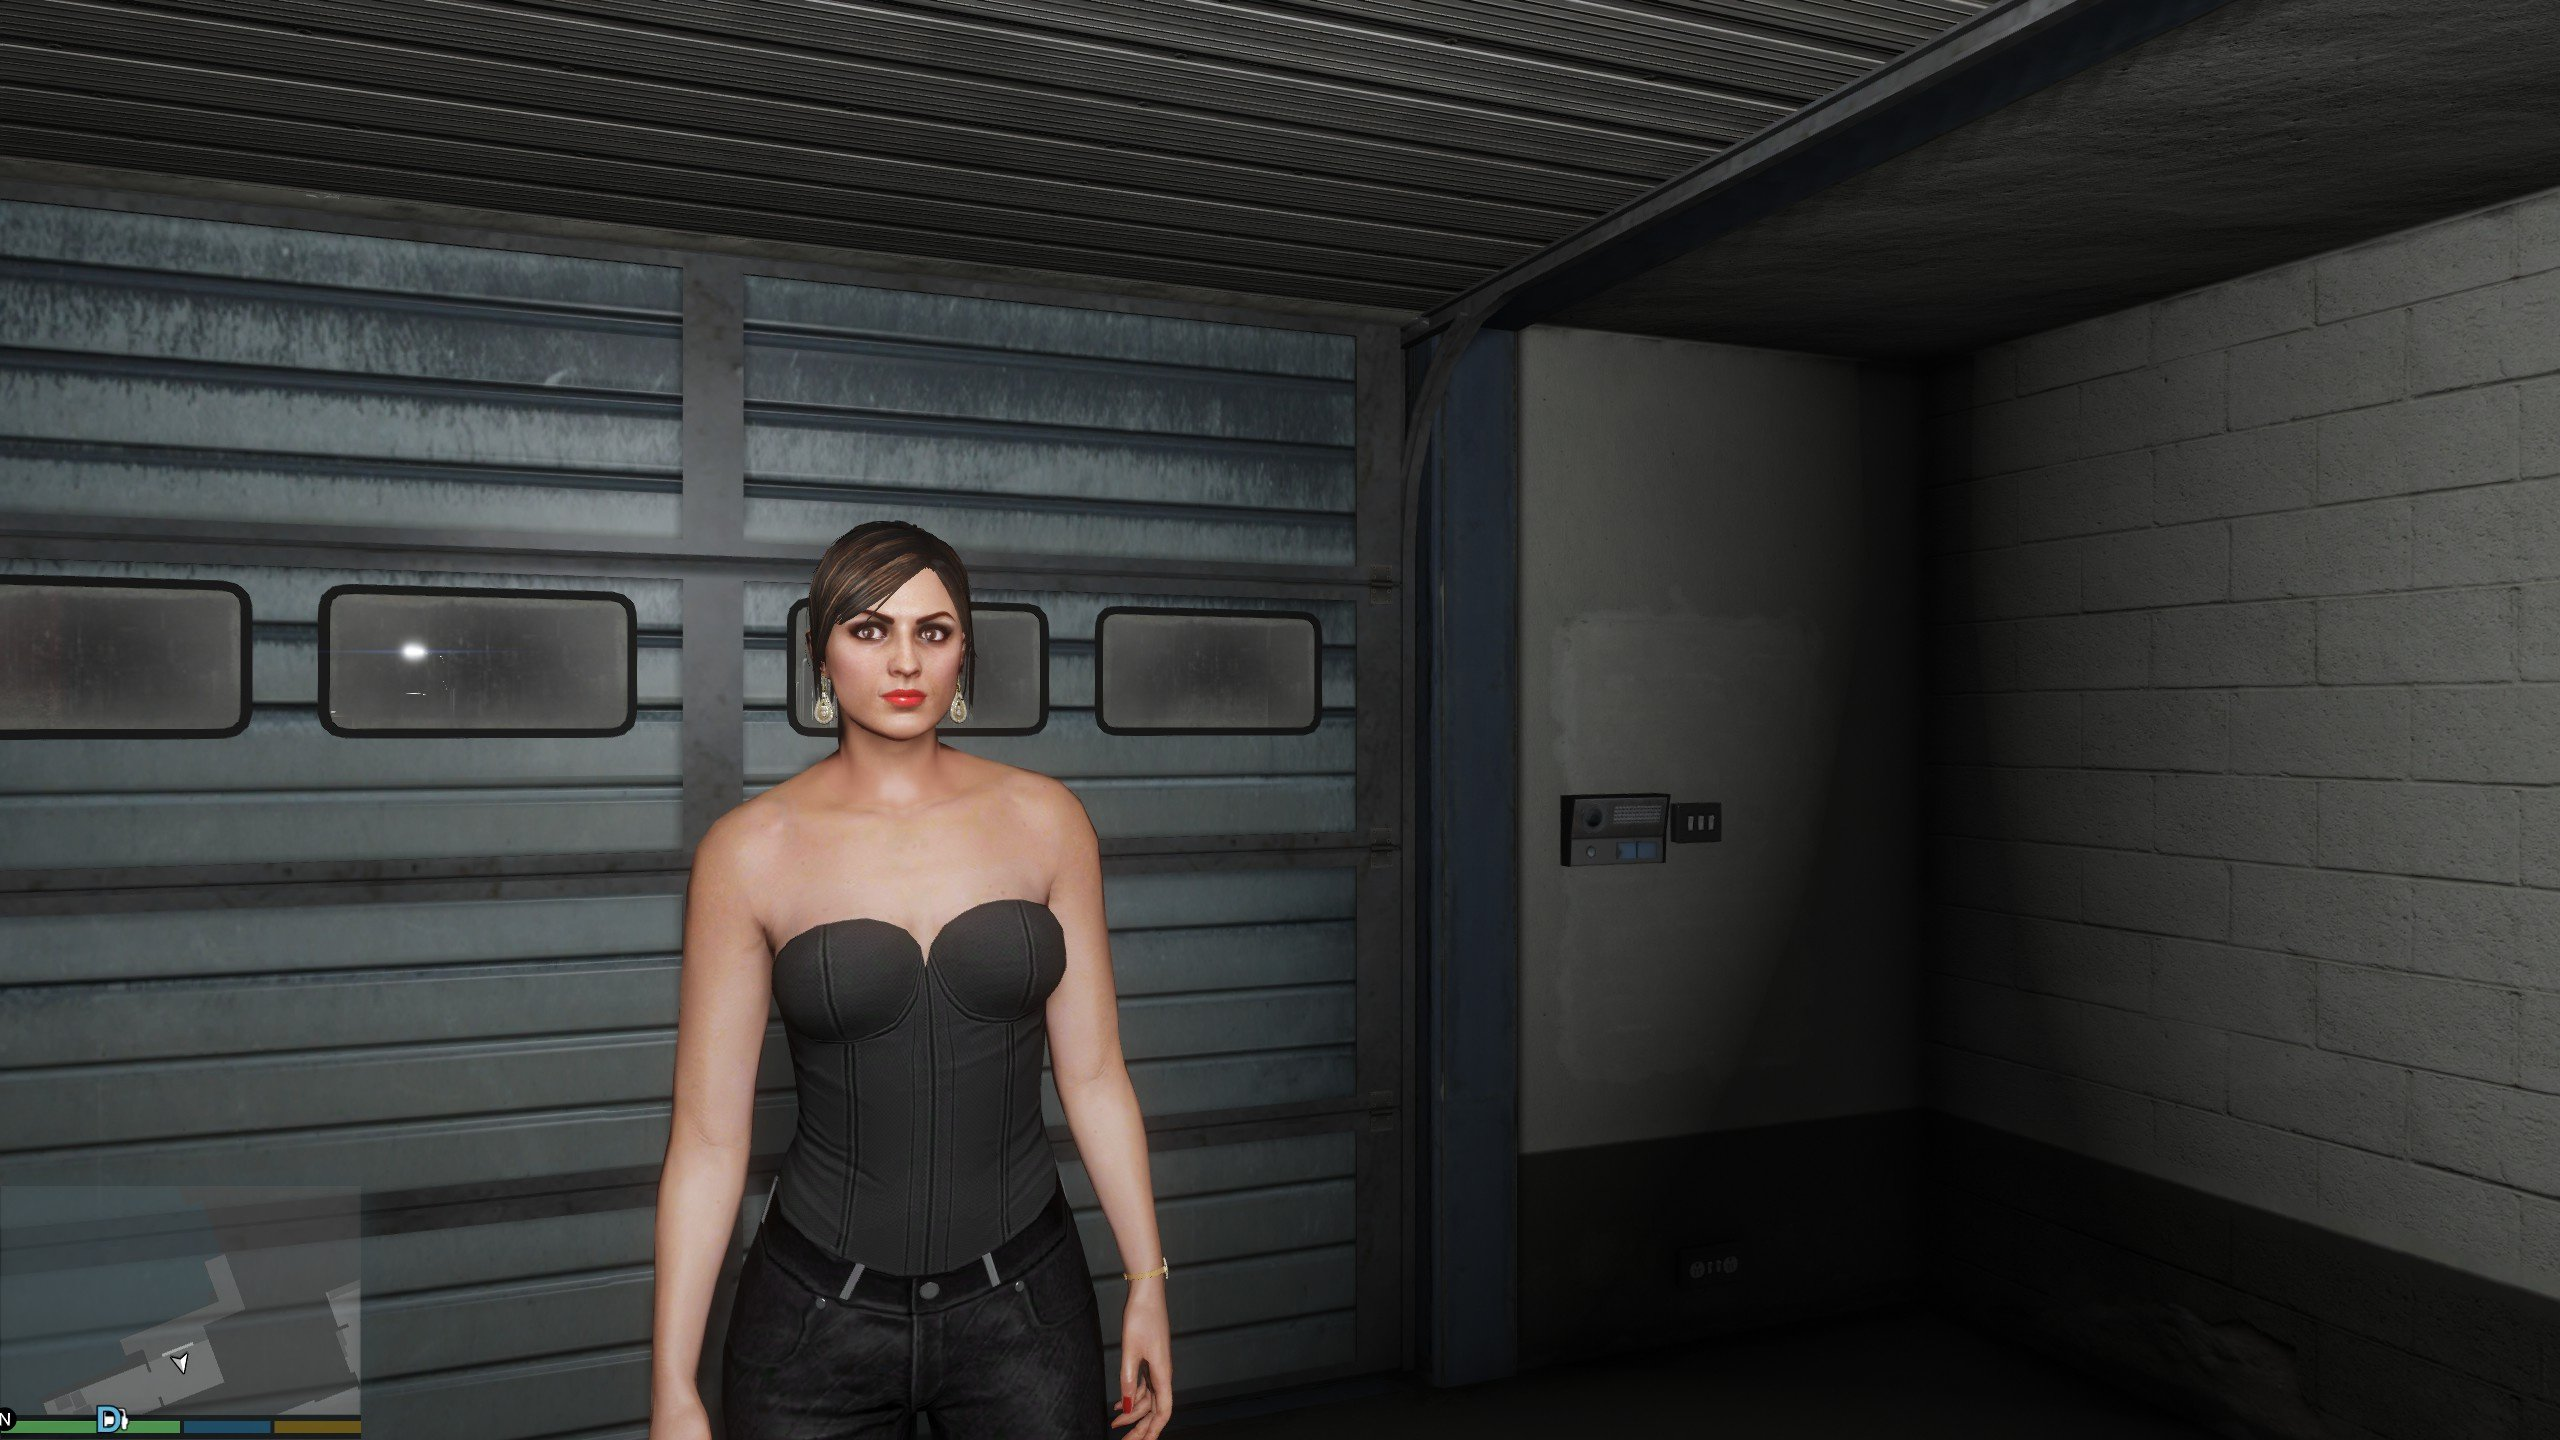 Modified MP Female Clothes Part 1 [OIV] (Working but unsupported) - GTA5-Mods.com